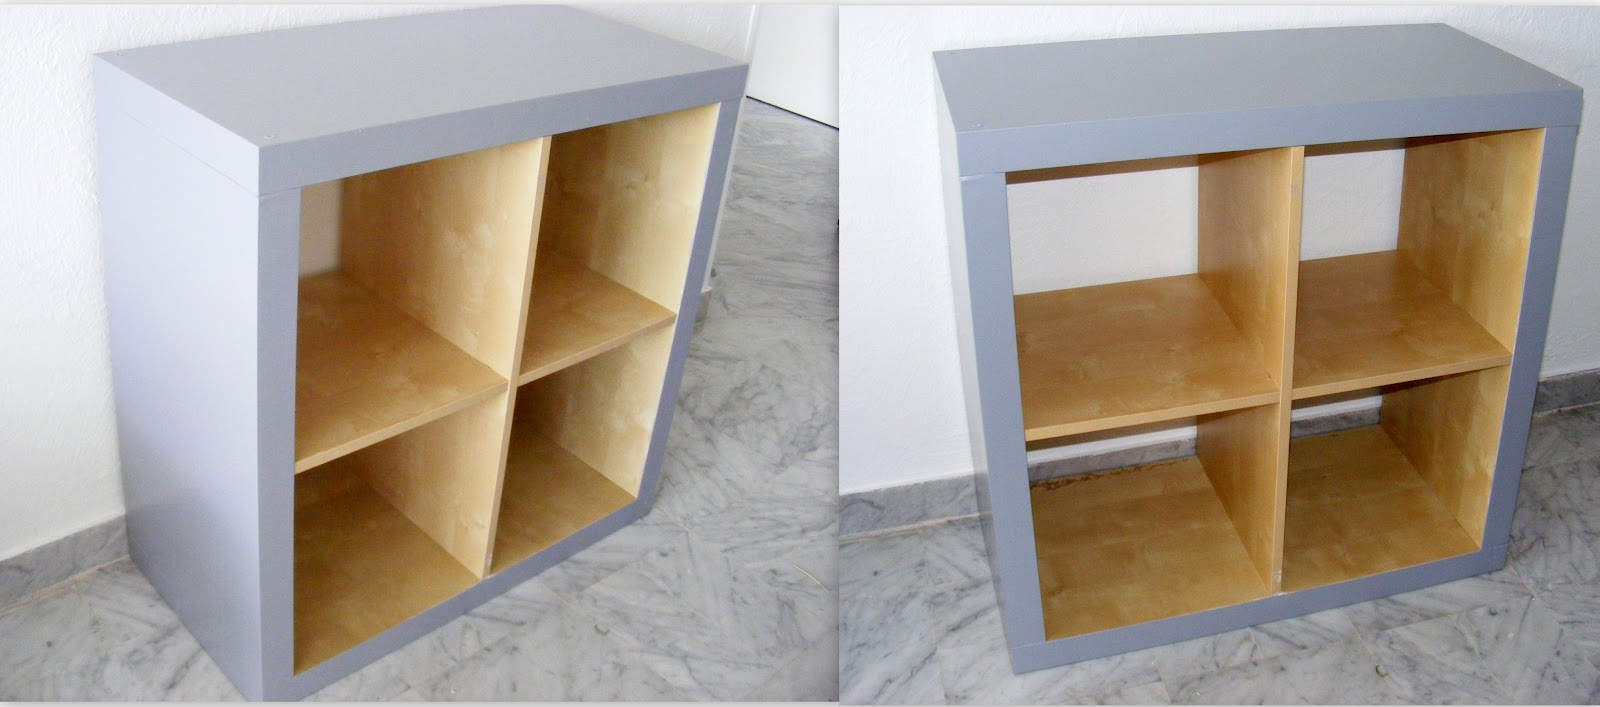 Lespetitsbonheursdekenji diy repeindre ses meubles ikea for Customiser un meuble en pin